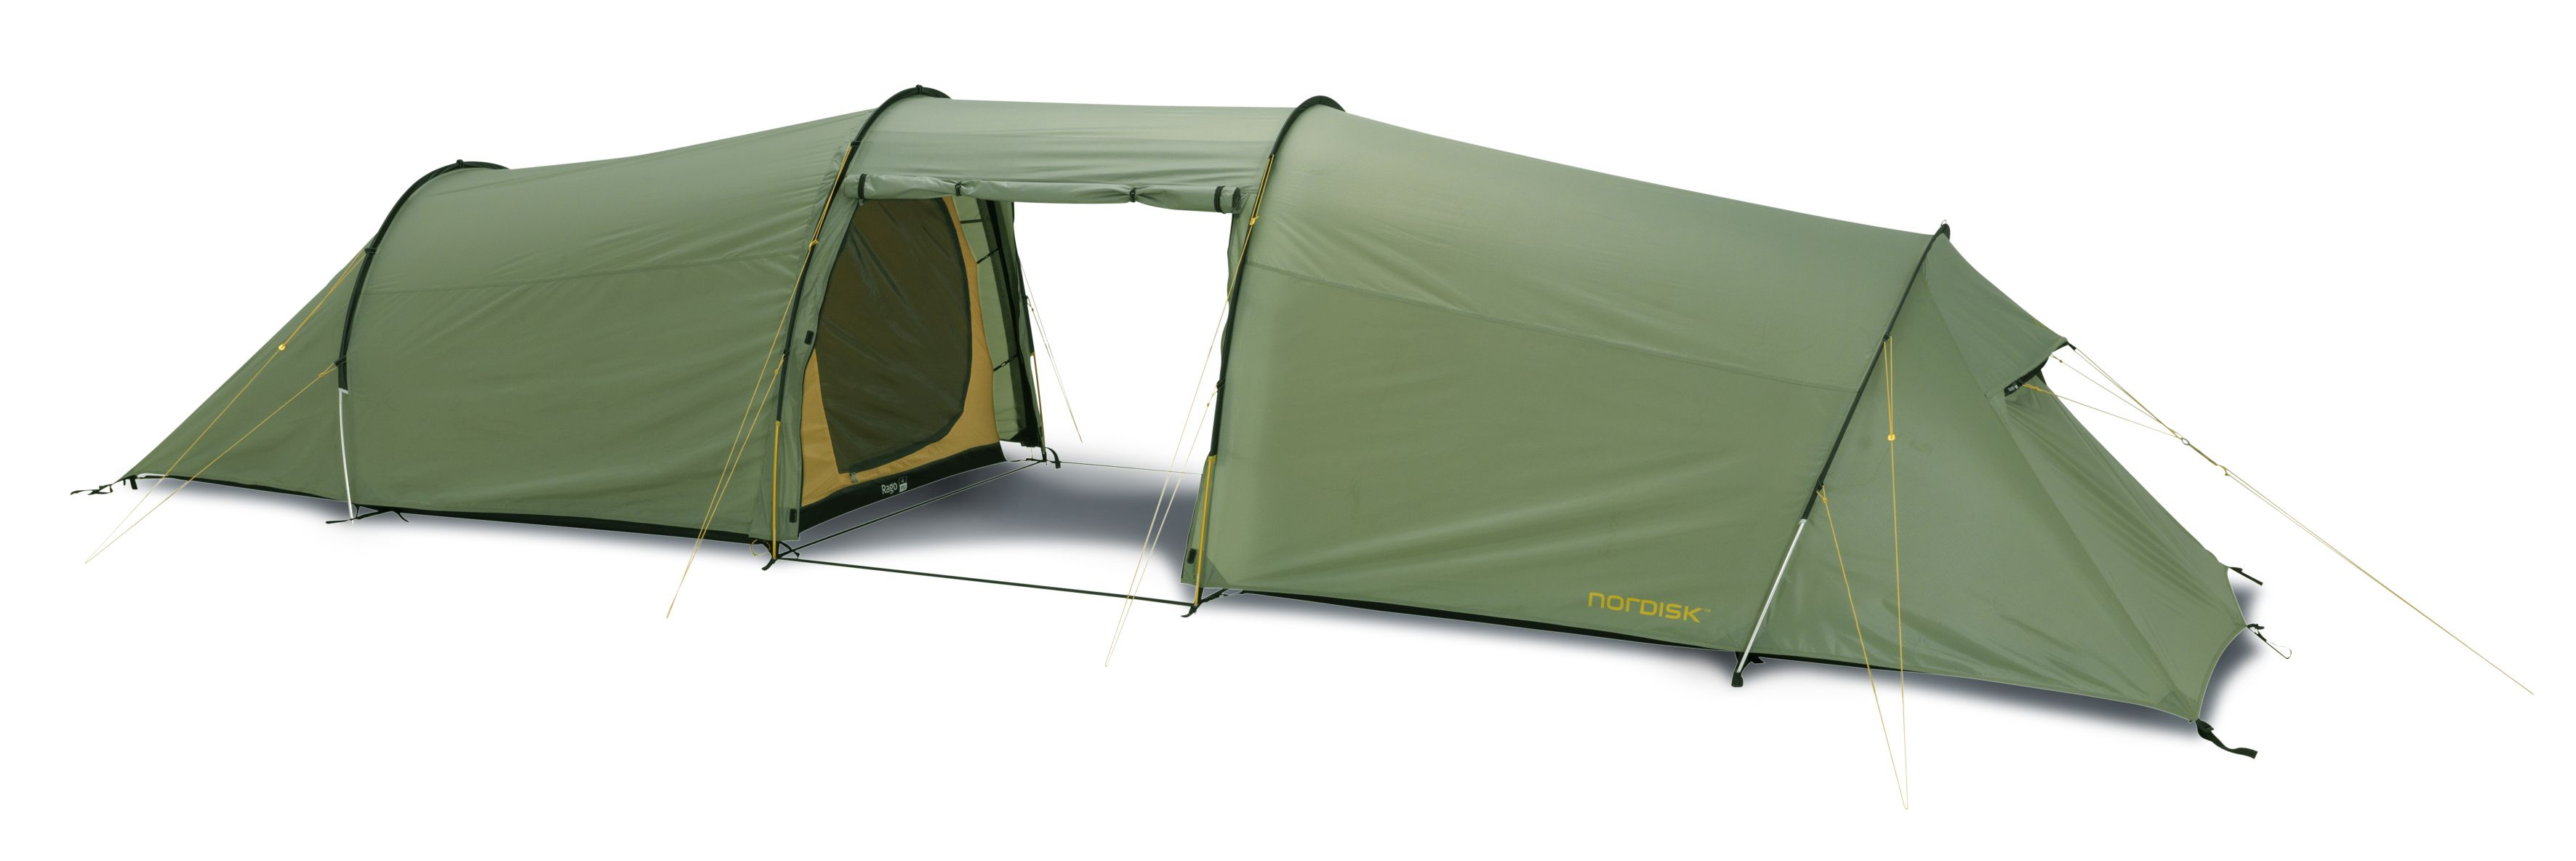 Nordisk Rago 4 Dusty Green-30